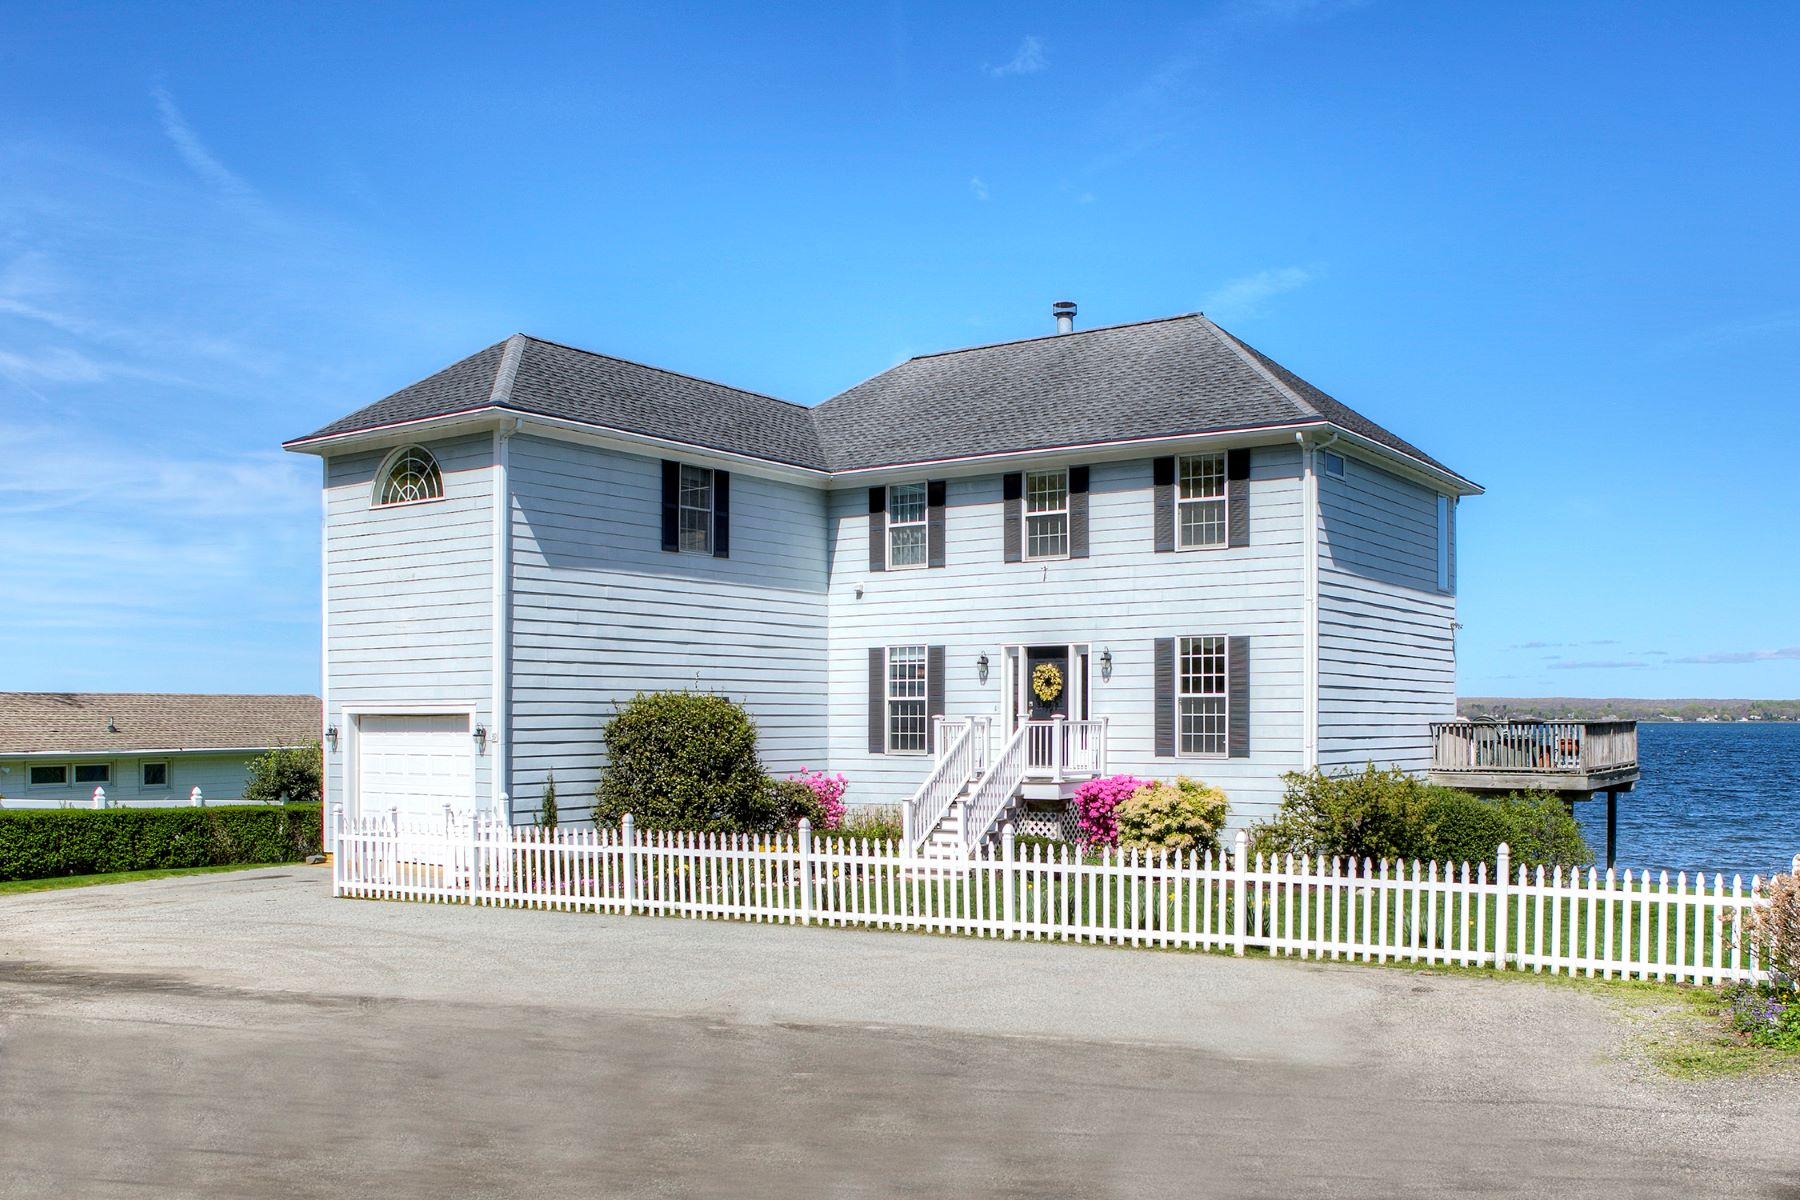 single family homes for Sale at Sakonnet Waterfront 39 Bayside Avenue, Portsmouth, Rhode Island 02871 United States